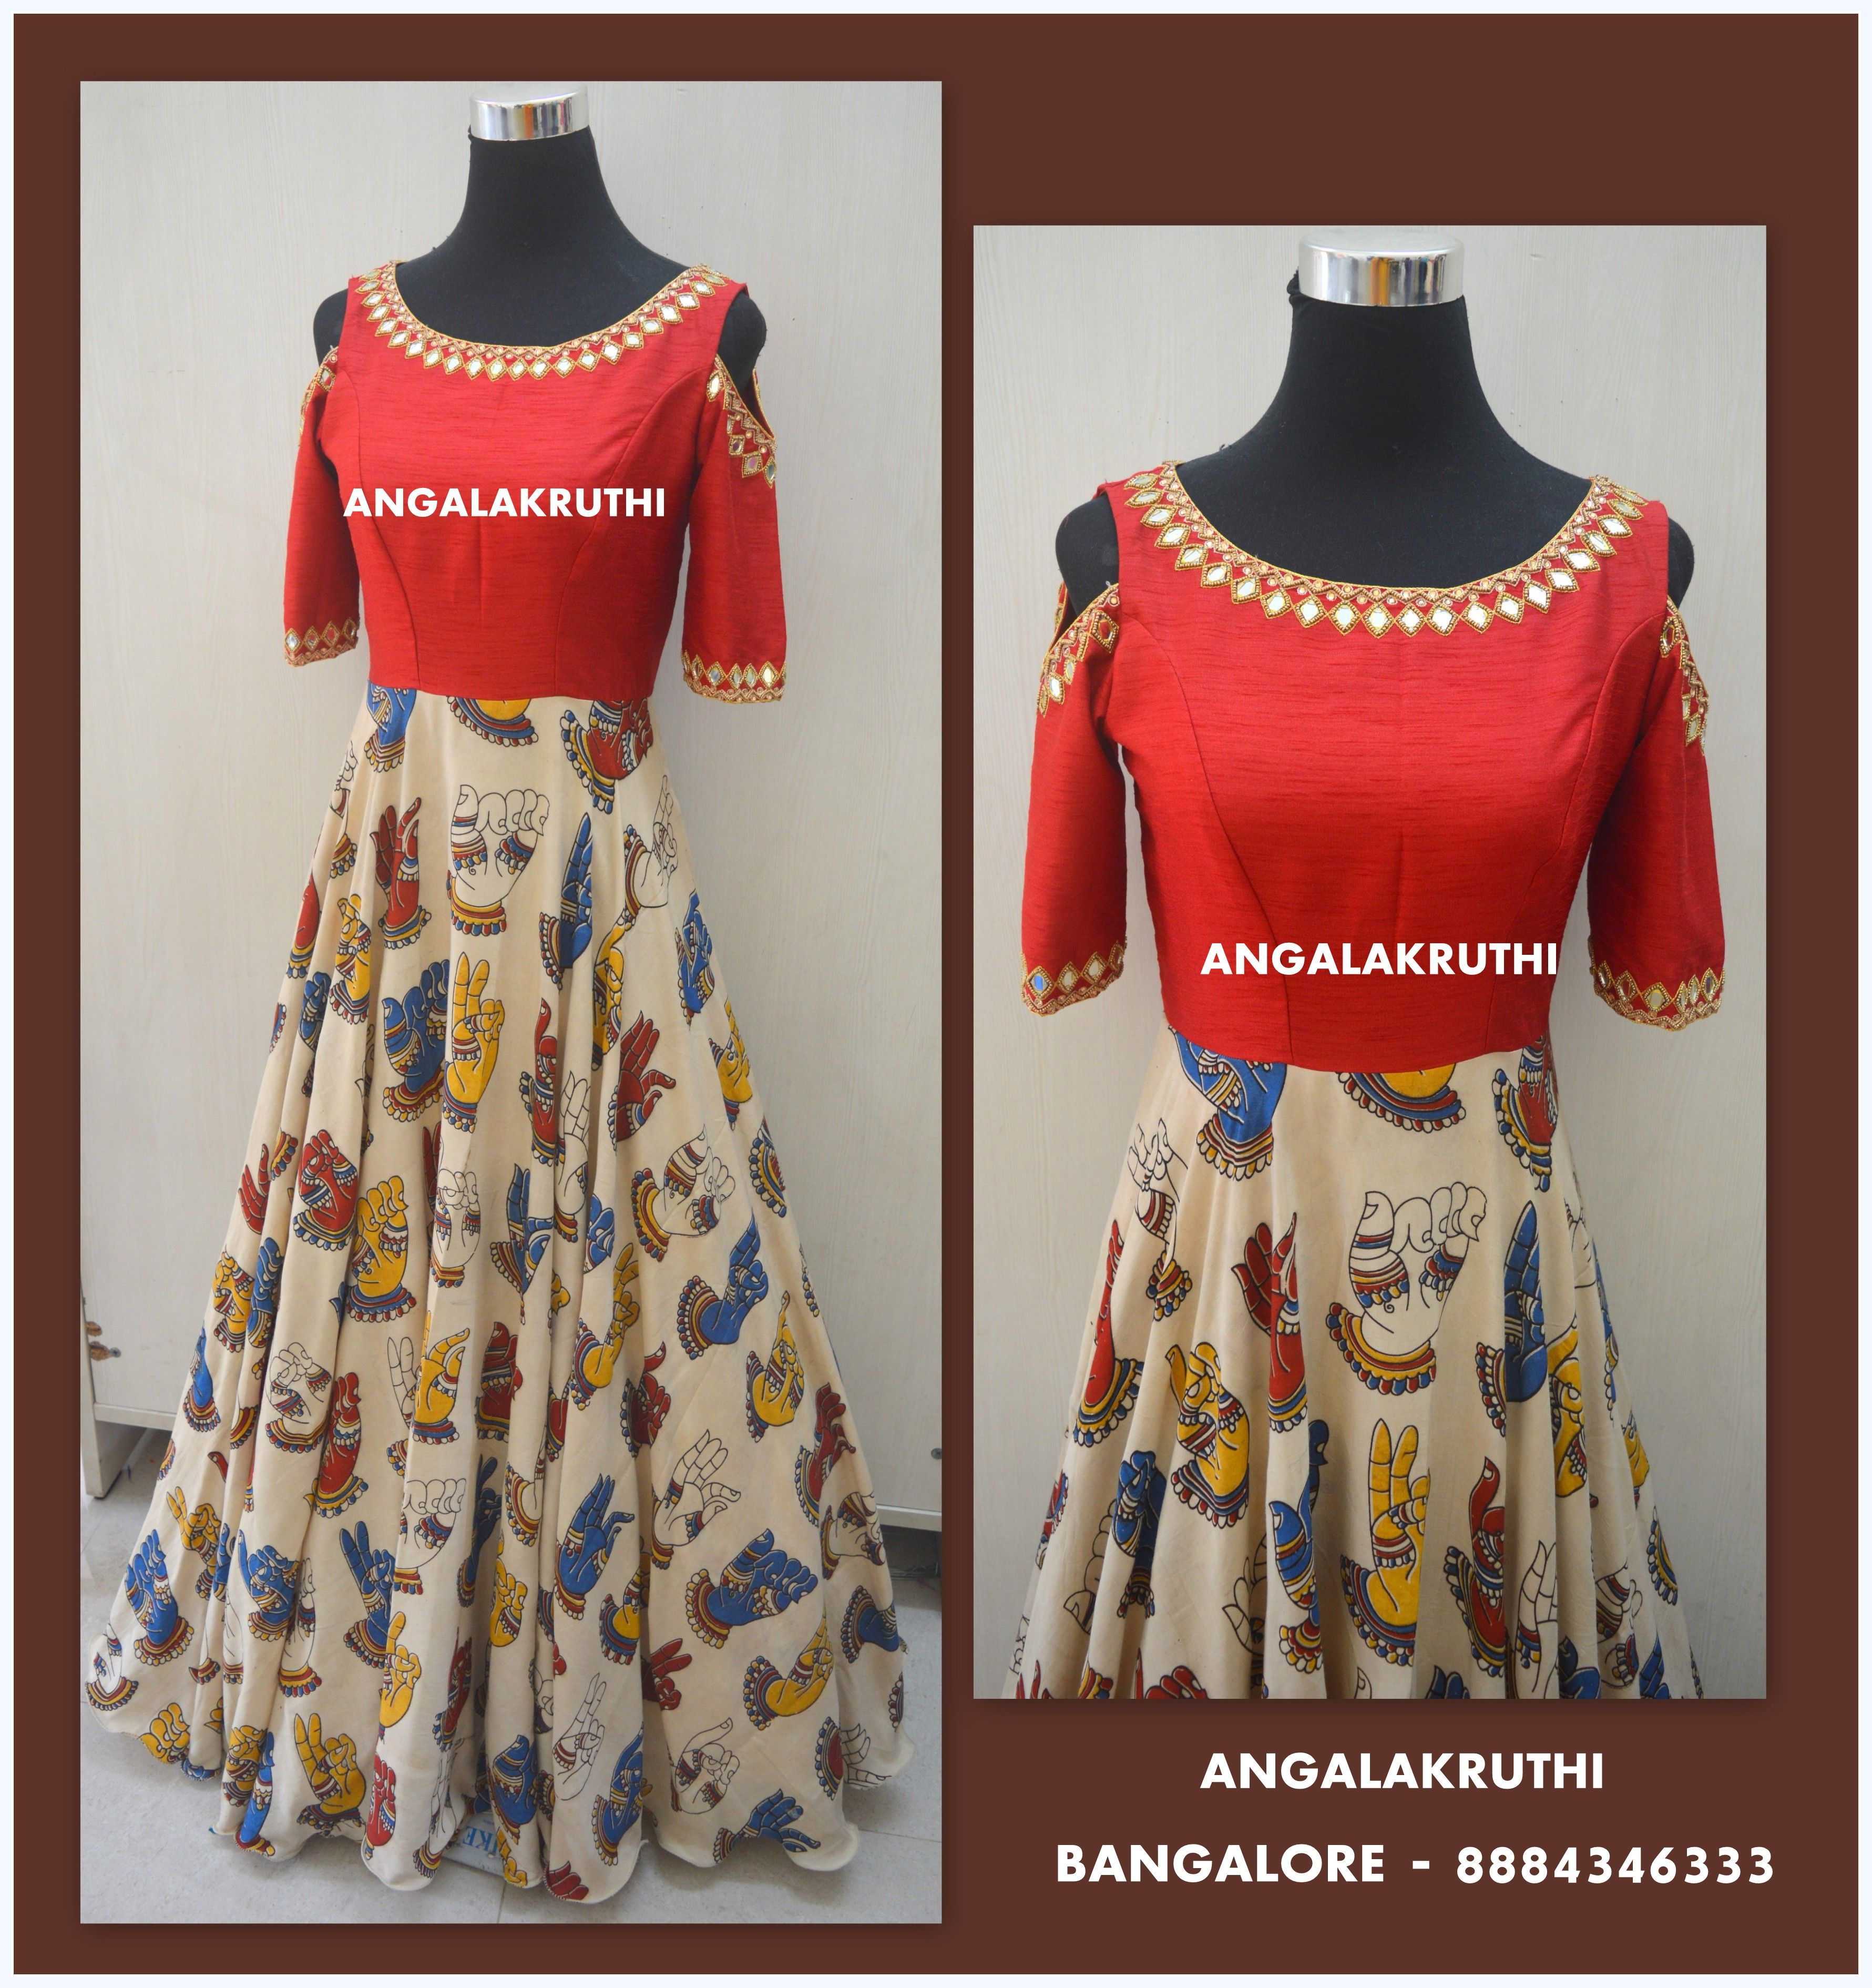 Kalamkari Long Gowns By Angalakruthi Bangalore Boutique Long Gown Customized Designs In Bangalore By Angalakr Indian Party Wear Saree Designs Long Gown Dress